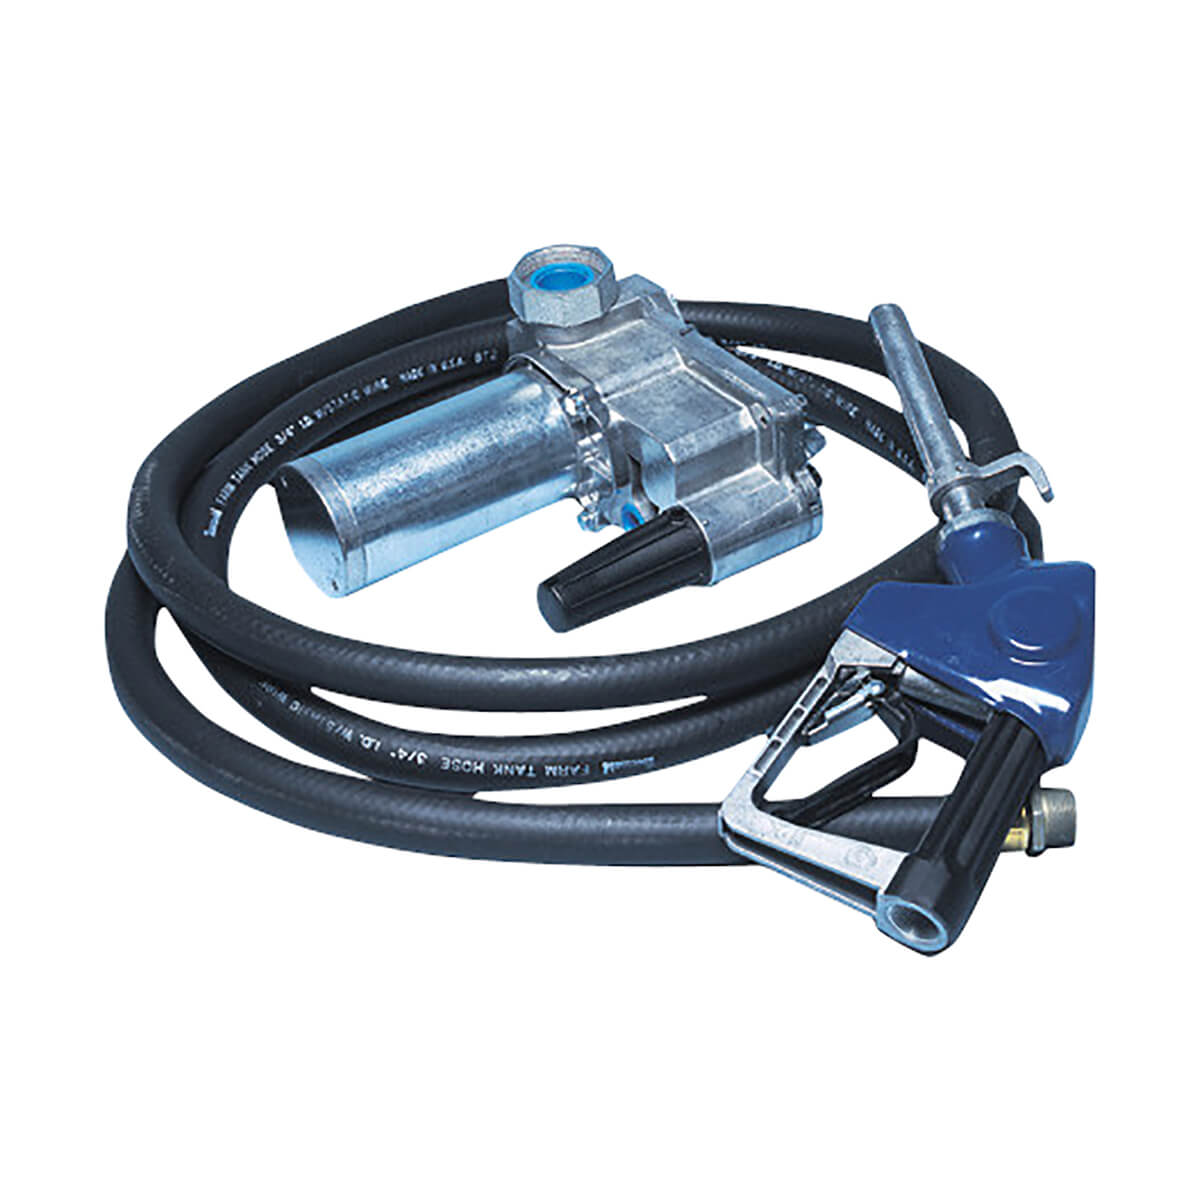 GPI-150A Fuel Transfer Pump